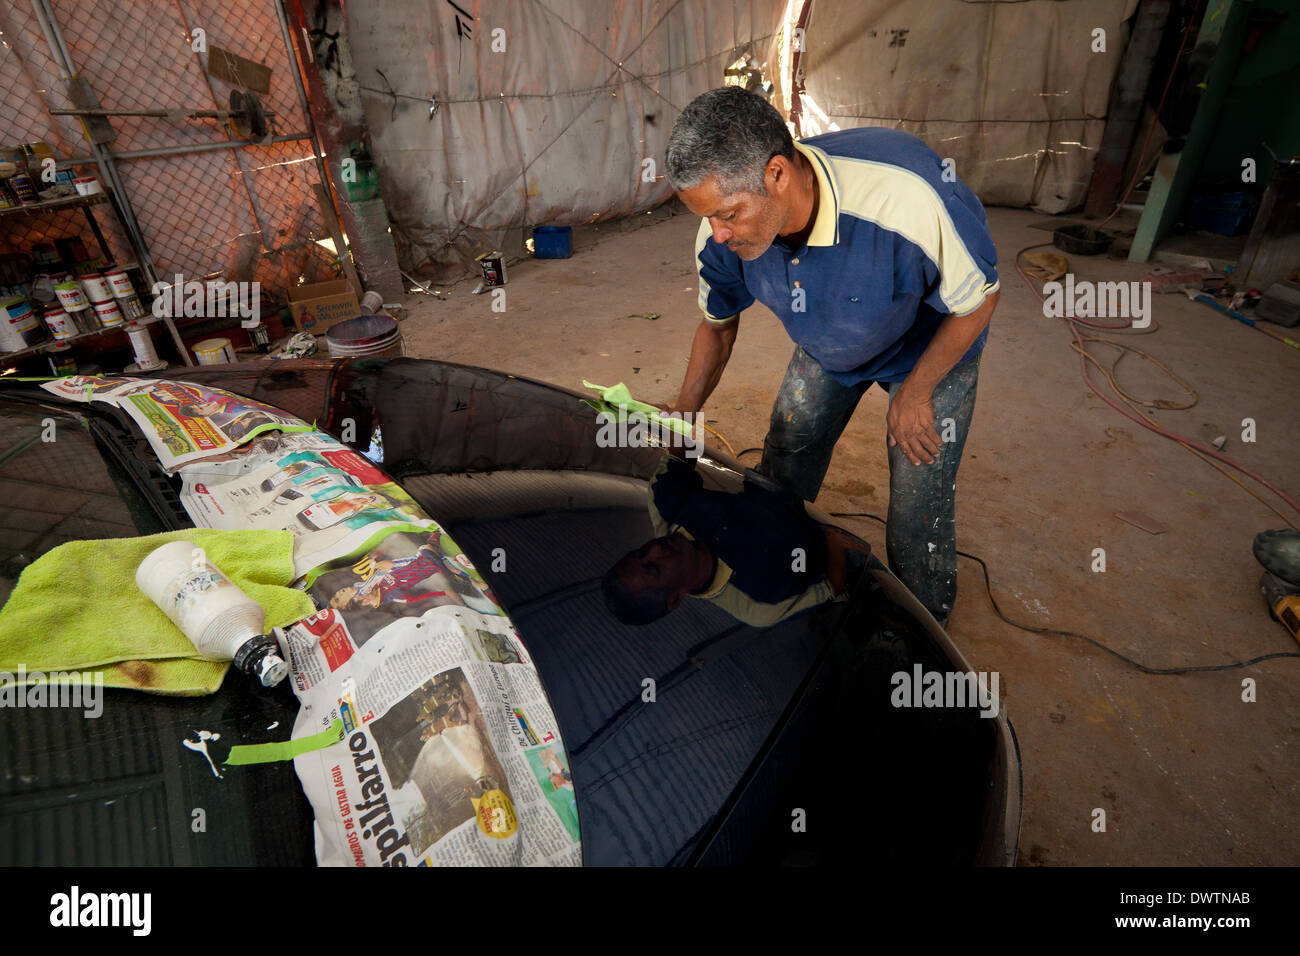 The owner of a car workshop, Santos, polishes a car in Penonome, Cocle province, Republic of Panama. - Stock Image